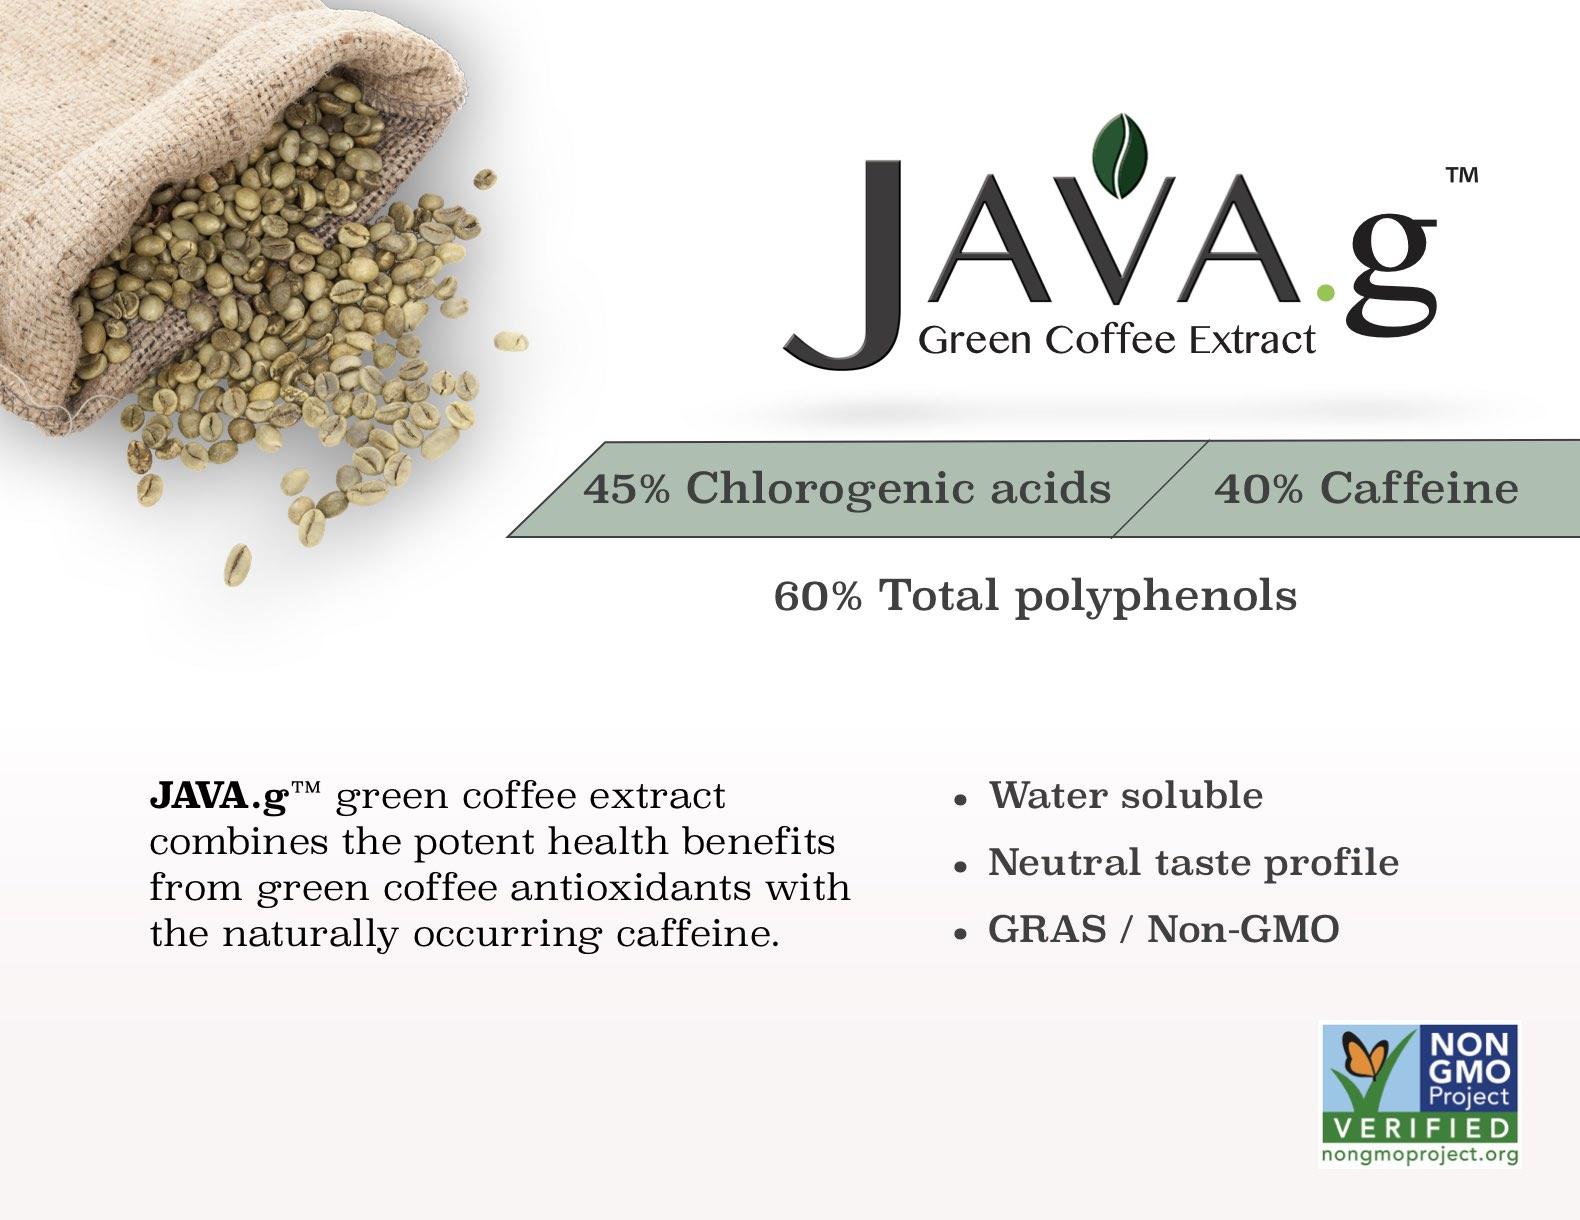 JAVA.g™ Green Coffee Extract for Energy